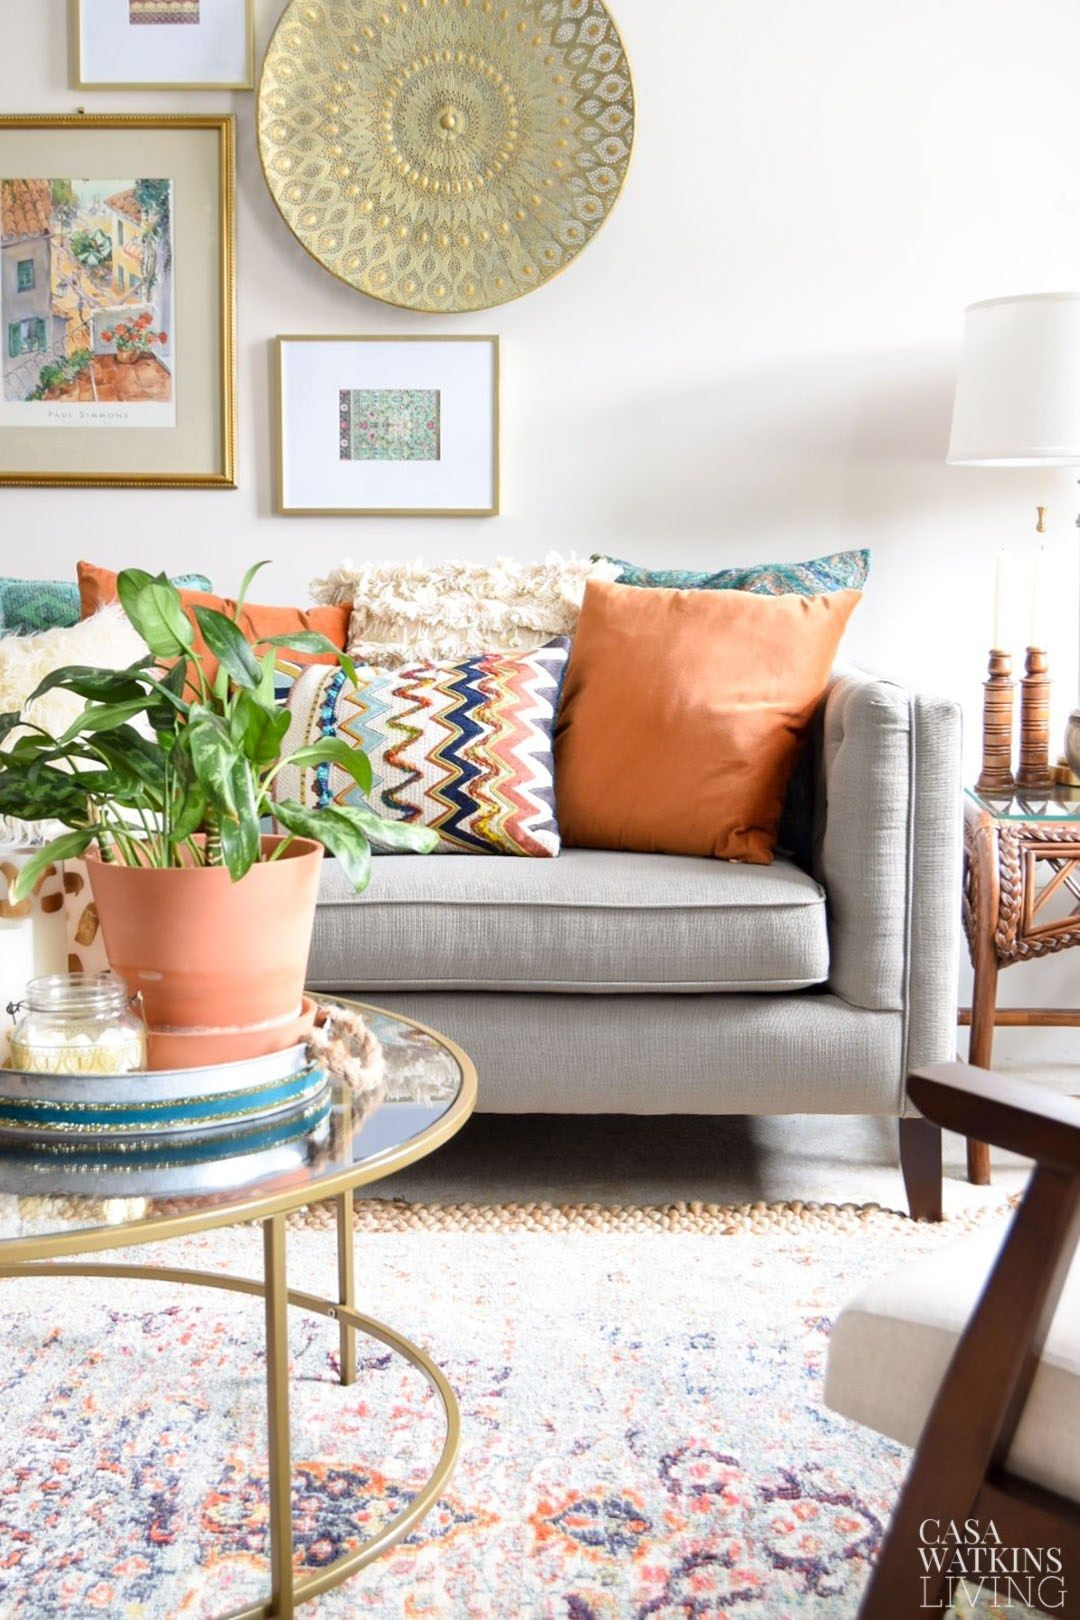 7 Easy Fall Decorating Ideas For The Living Room and Entryway images